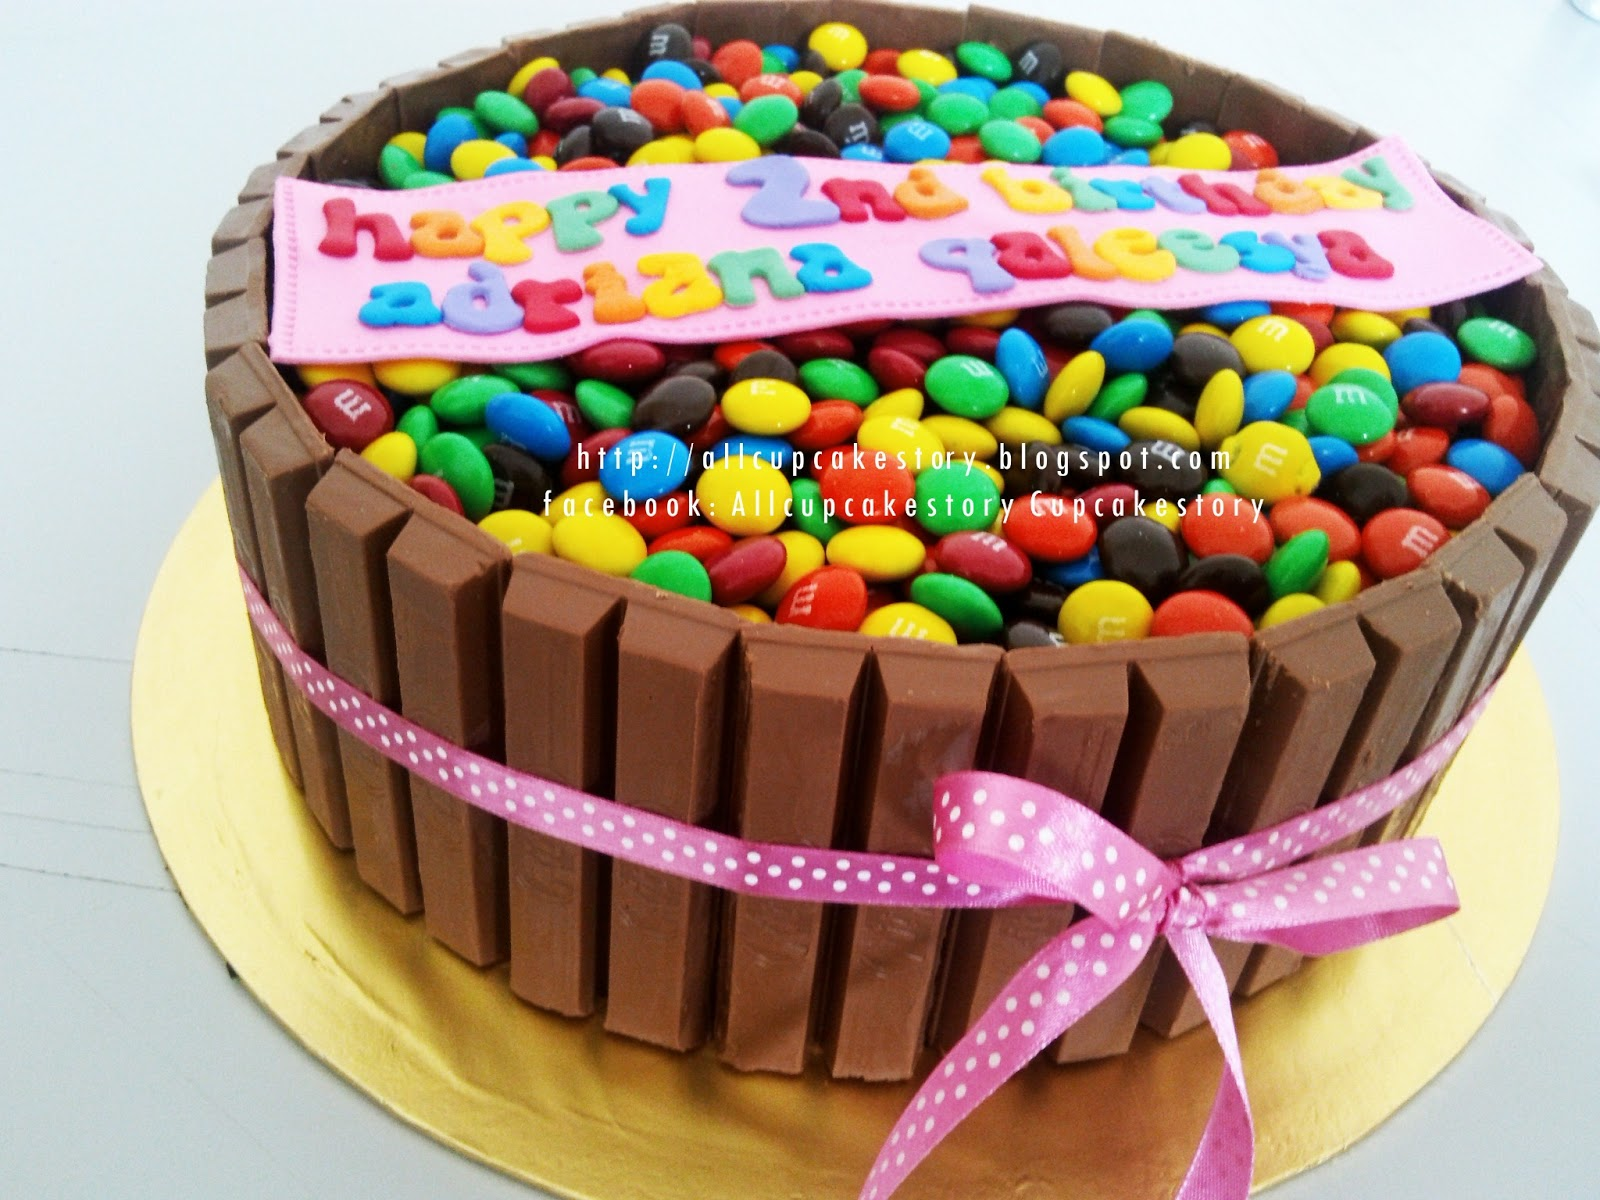 Decorating Cake With Kitkat : allcupcakestory: Kit Kat & M&M Cake